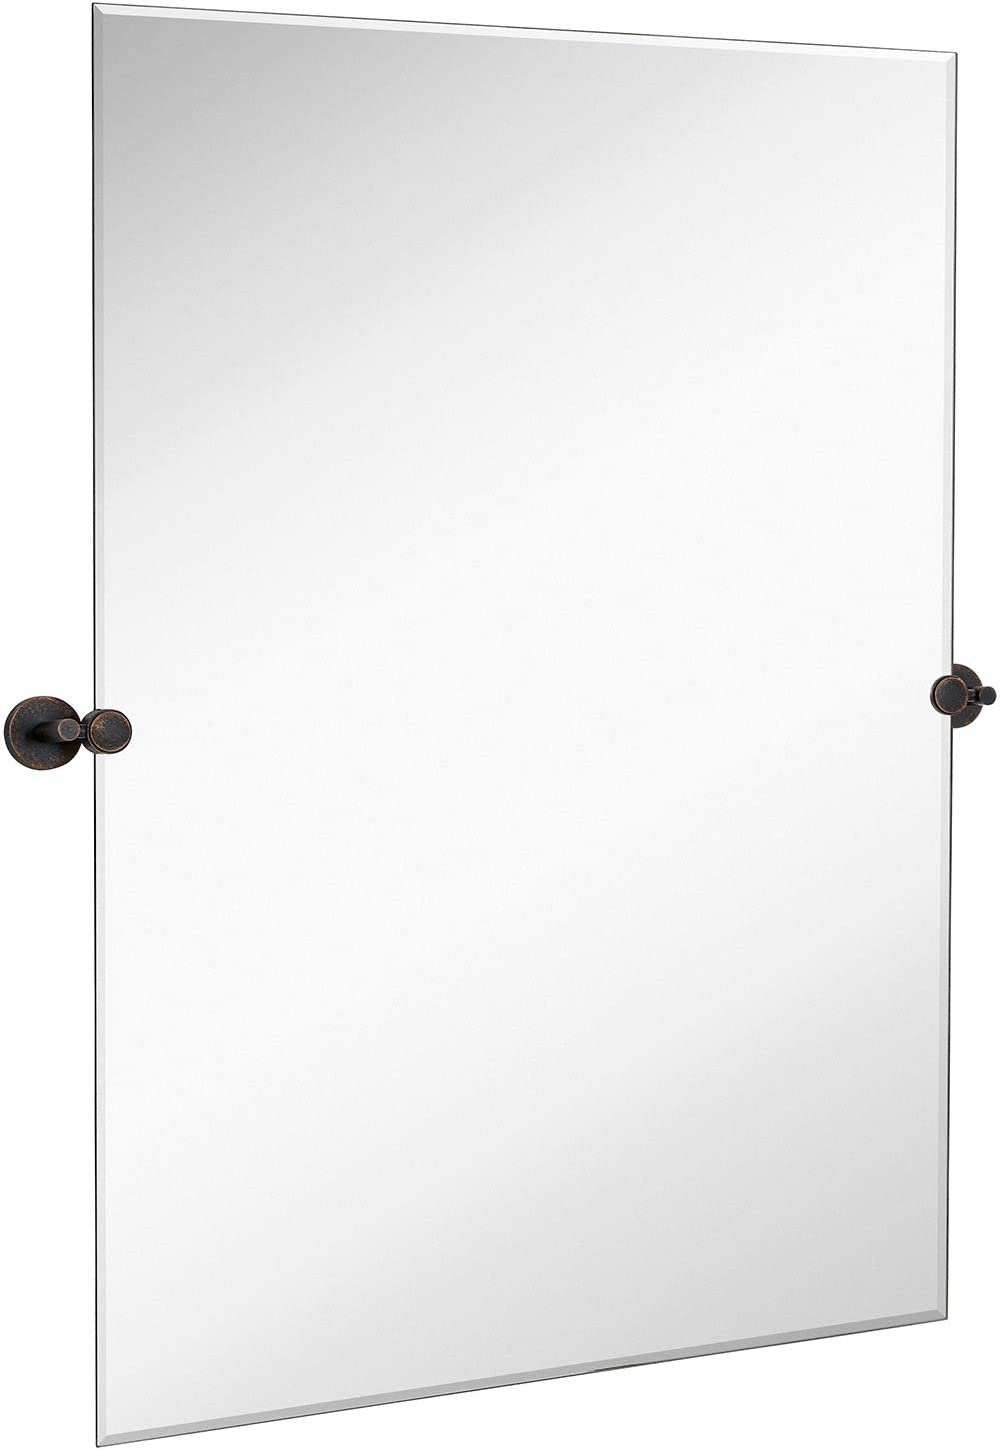 Hamilton Hills Large Pivot Rectangle Mirror with Oil Rubbed Bronze Wall Anchors   Silver Backed Adjustable Moving & Tilting Wall Mirror   30